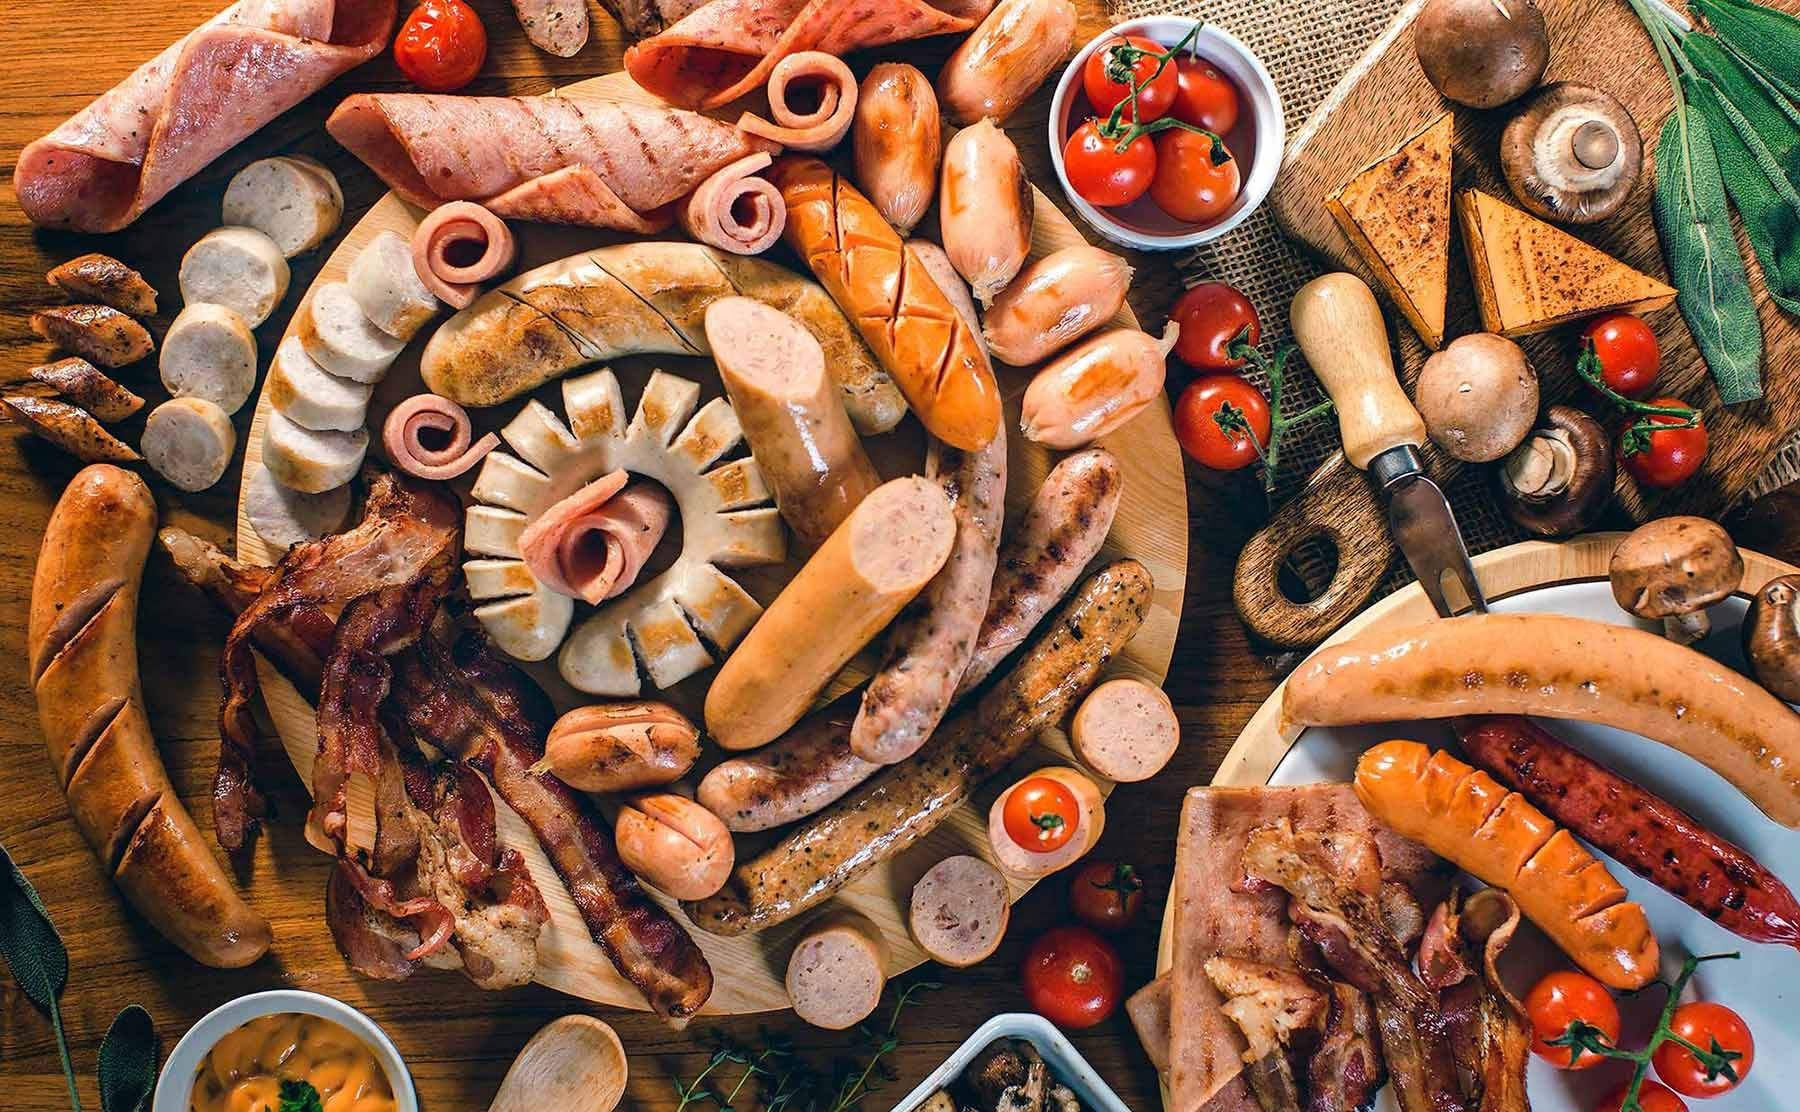 Best deli products in town